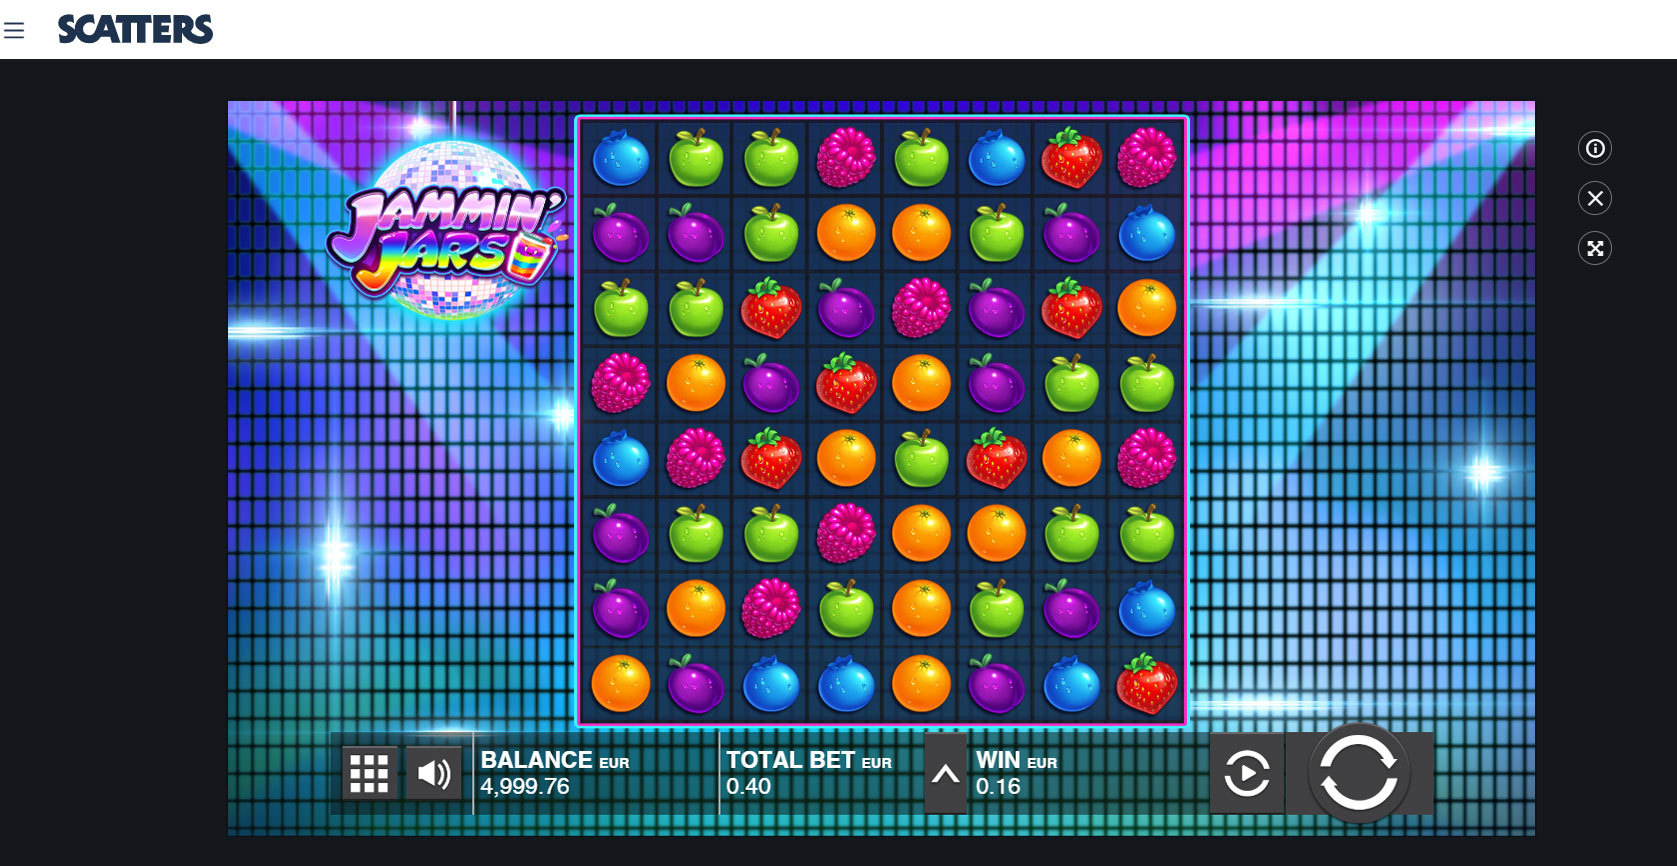 Play Jammin Jars by Push Gaming for Free or Real Money at Scatters Casino